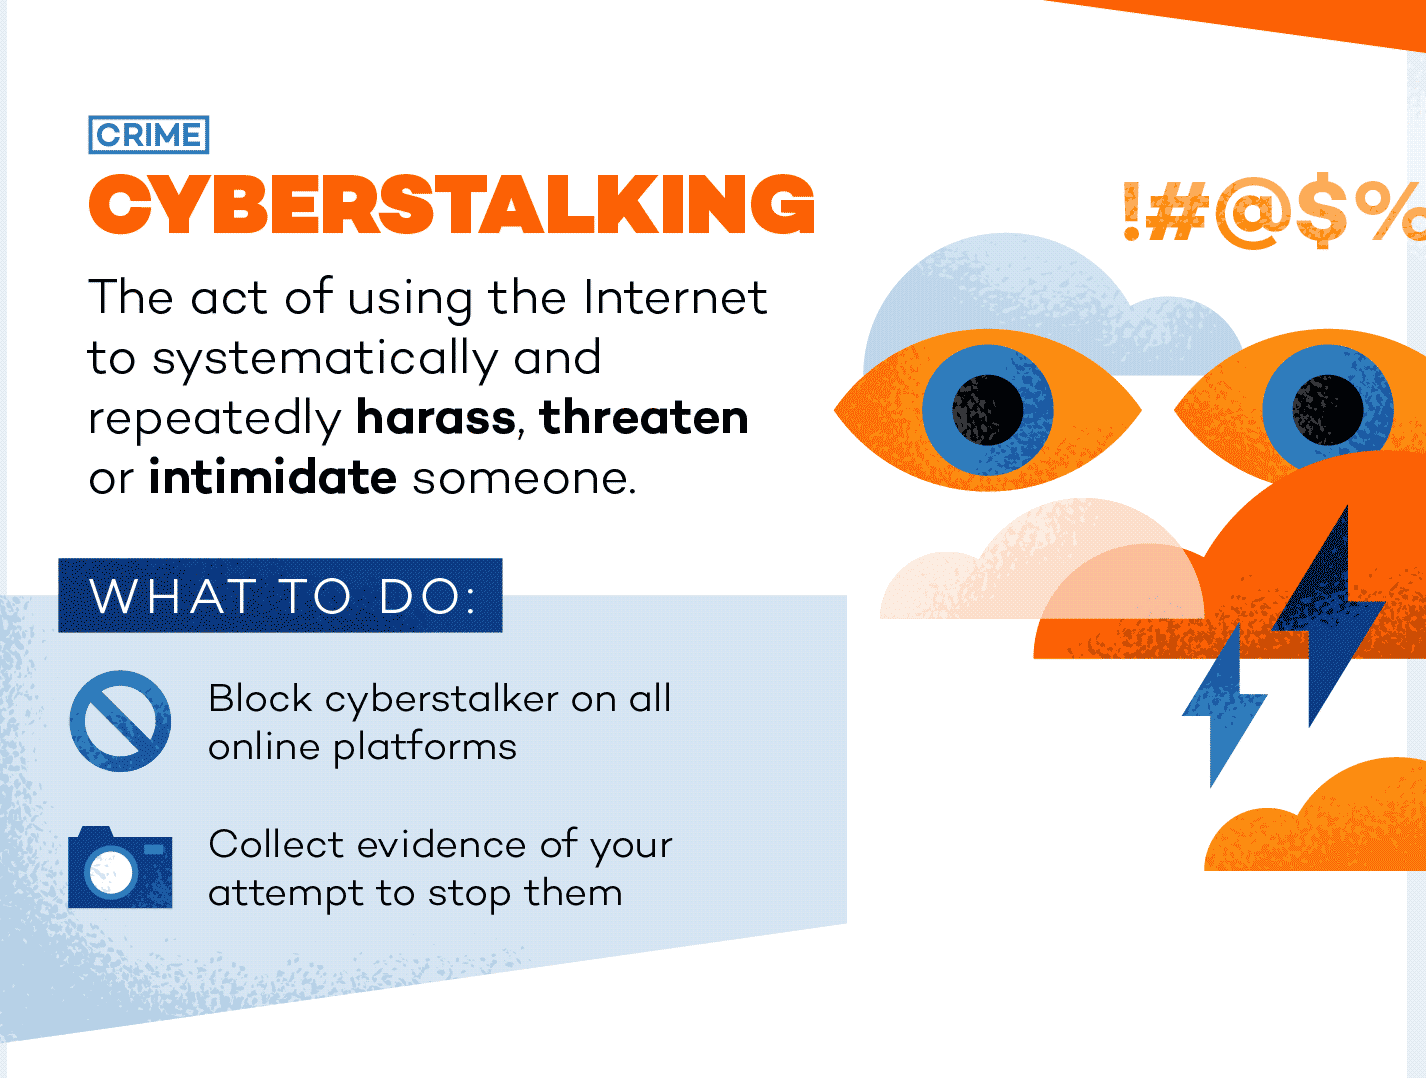 7 Types of Online Harassment to Watch Out For [Infographic